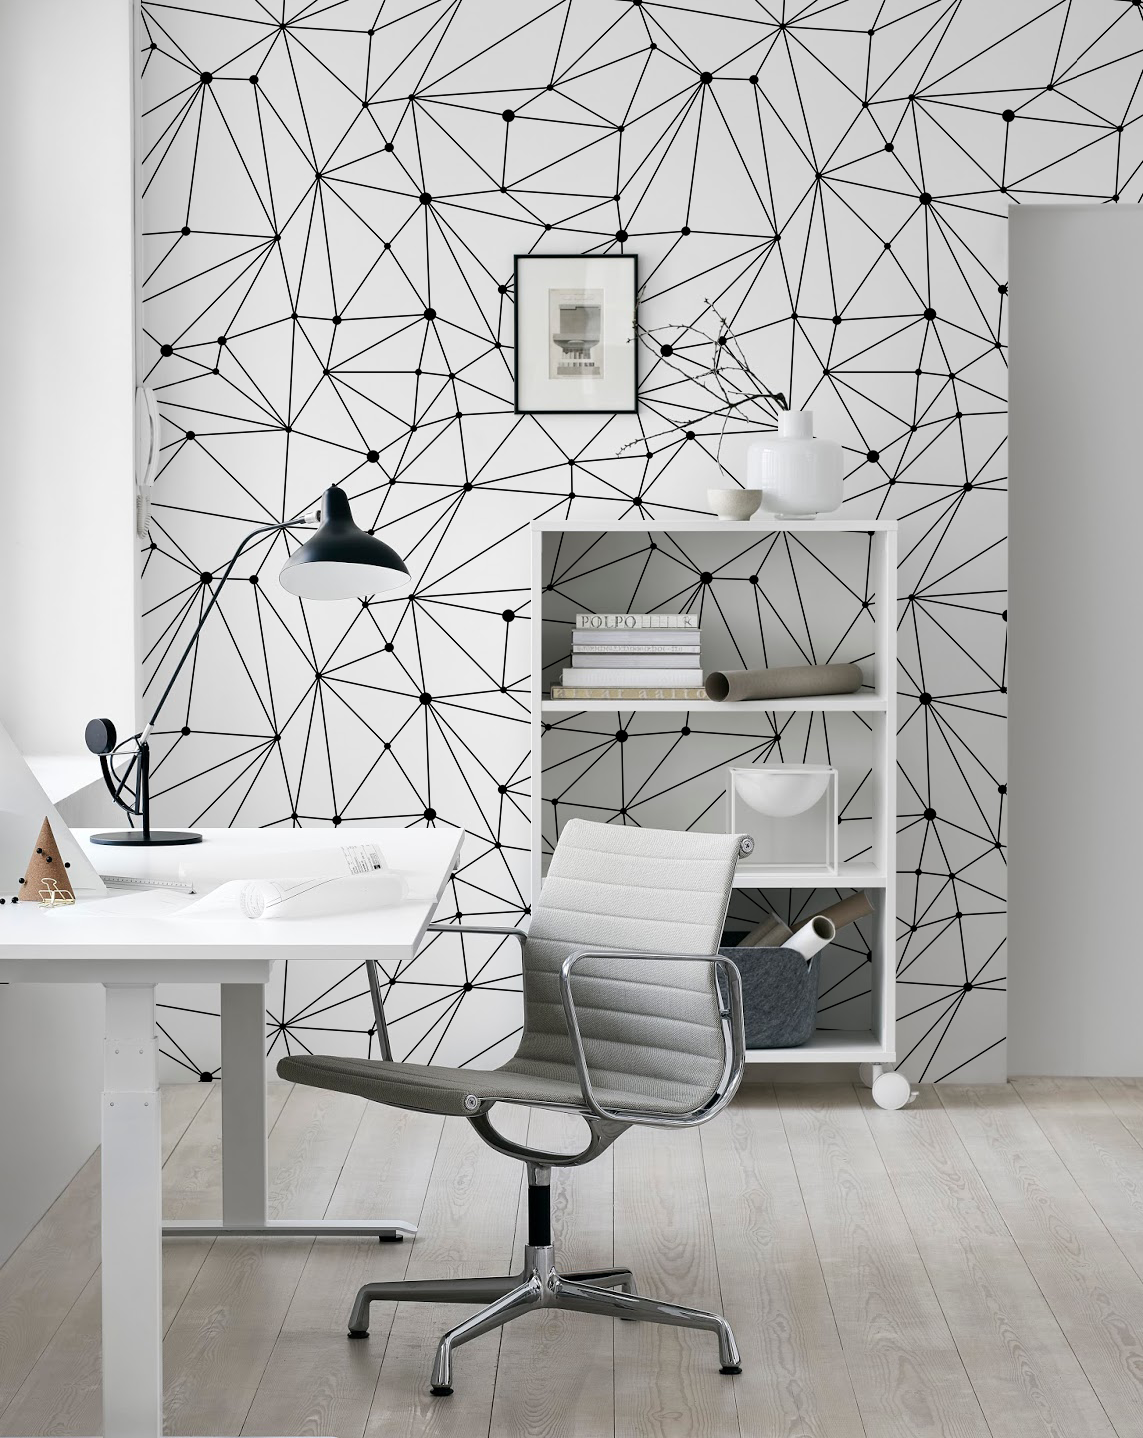 Connect the Dots Removable Wallpaper in 2019 | Home | 벽지, 벽화, 공예